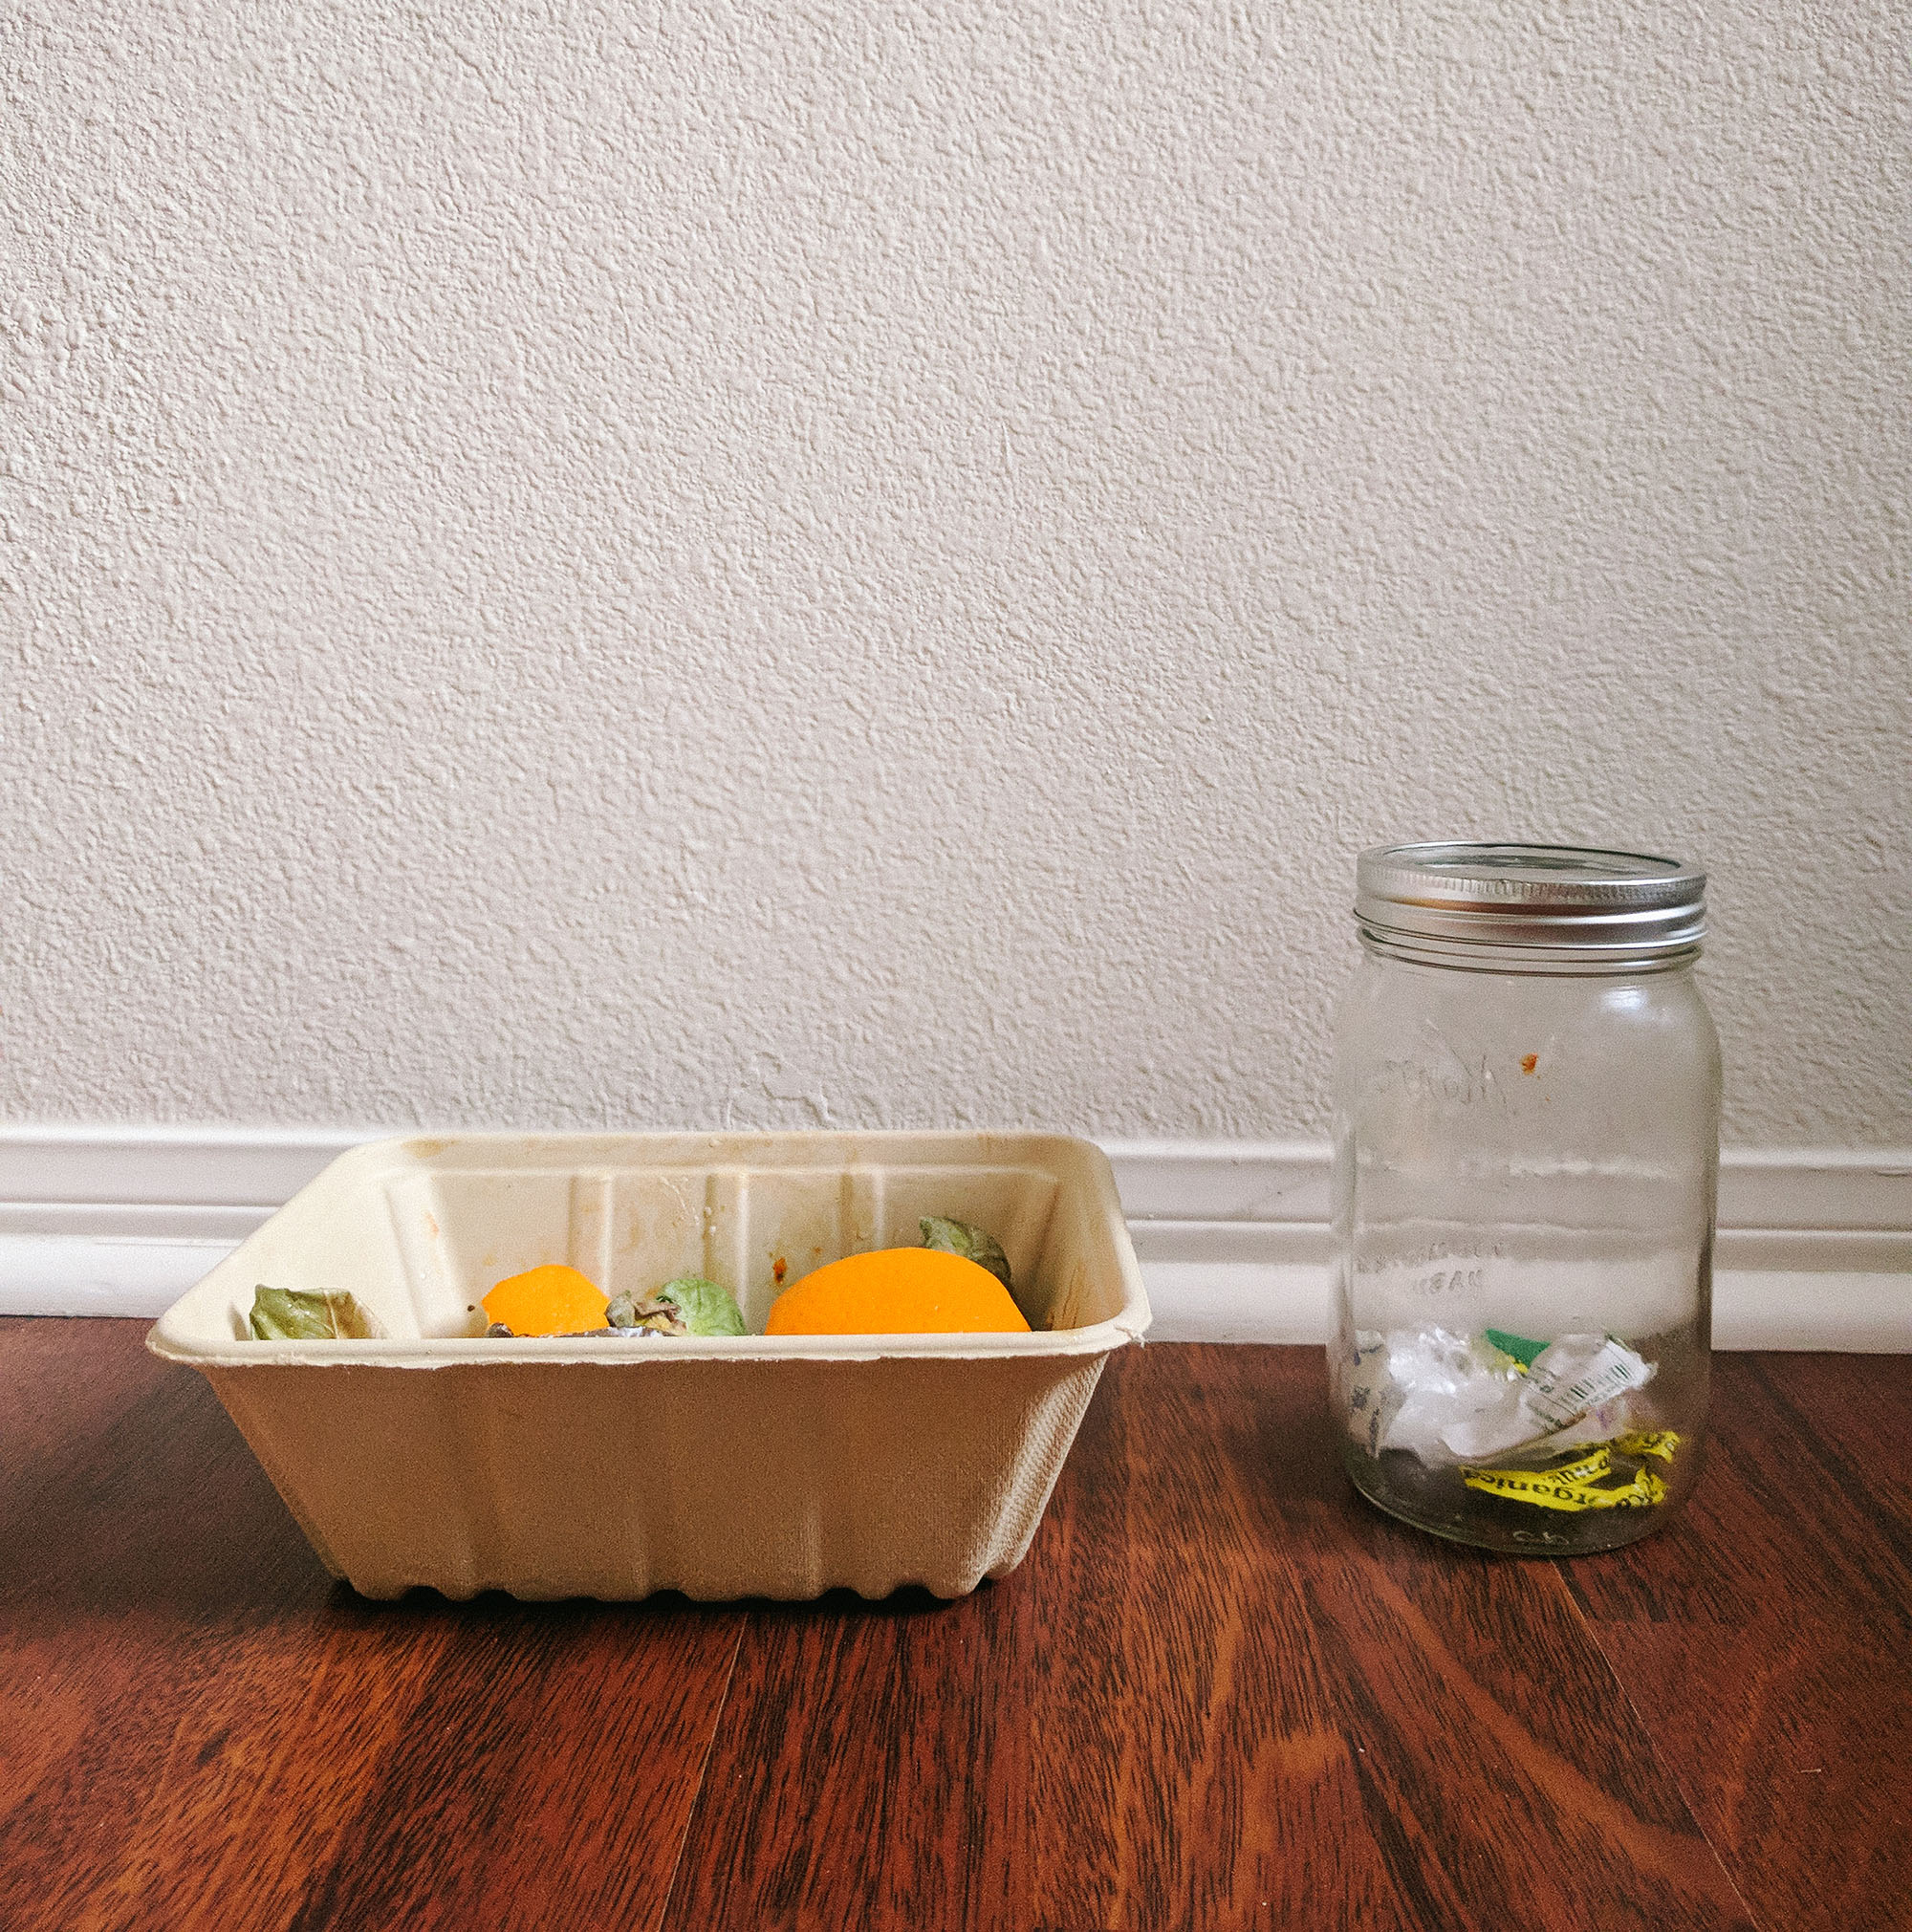 mason jar with waste and compost pile day 1